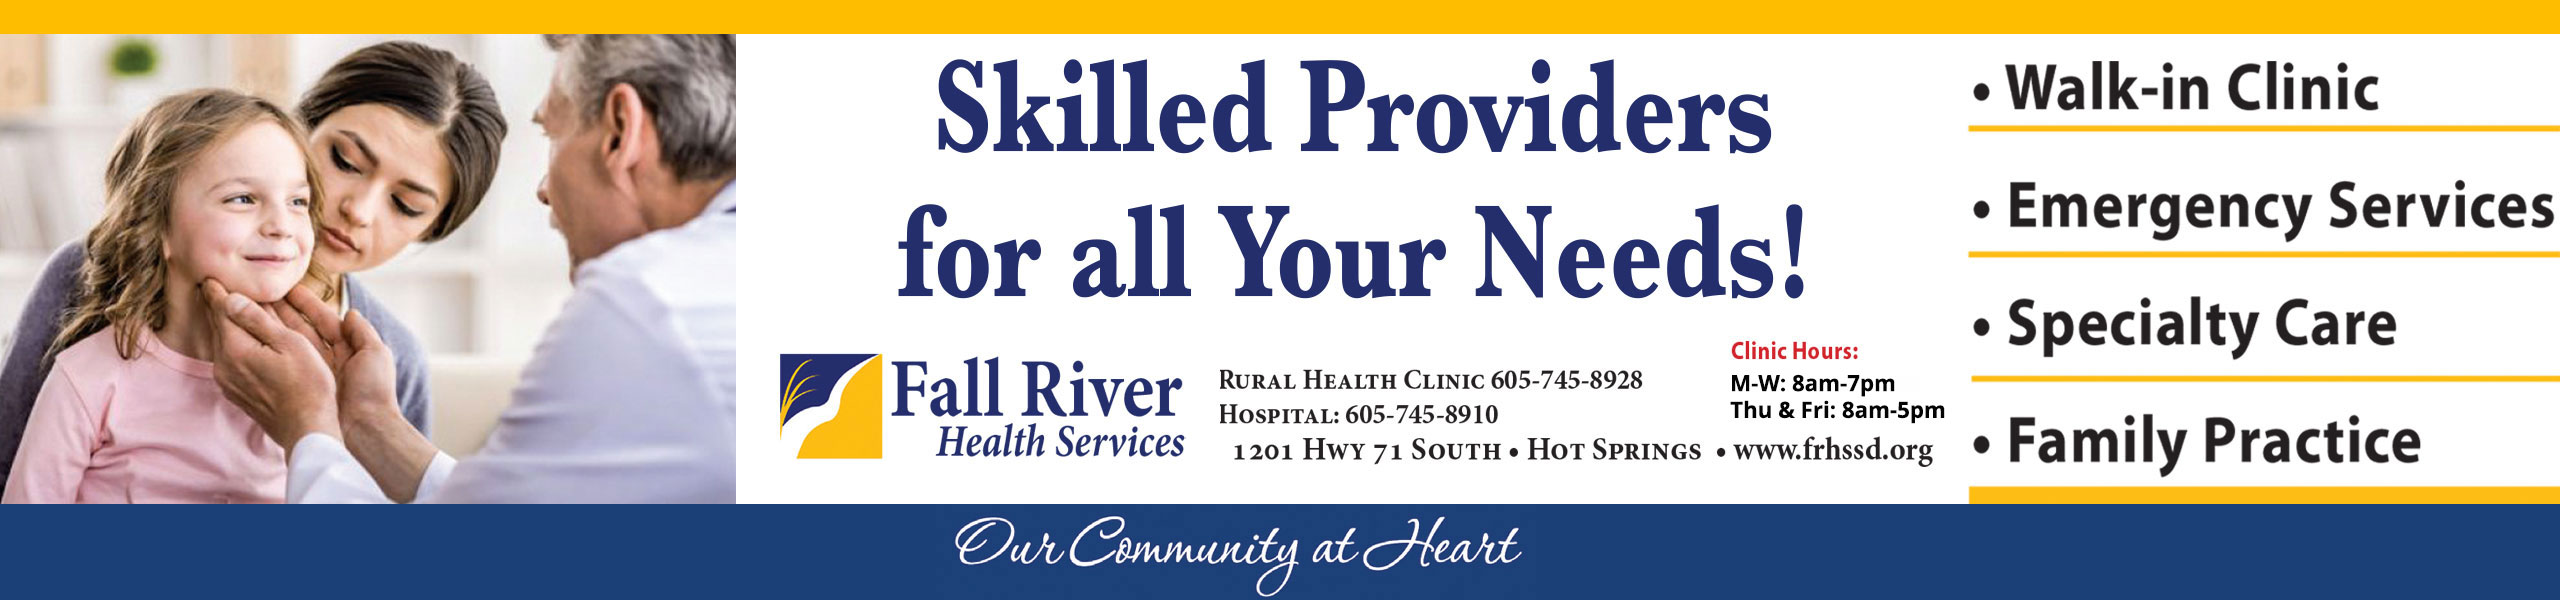 Picture of a Physician (male) checking out a little girls neck who is sitting in her moms lap in a Doctors Office  Banner says: Skilled Providers for all your Needs!  Fall River Health Services  Rural Health Clinic 605-745-8929 Hospital: 605-745-8910 1201 Hwy 71 South - Hot Springs  Clinic Hours: Mon-Fri 8am-7pm Sat. & Sun 9am-1pm  * Walk-In Clinic * Emergency Services *Specialty Care *Family Practice